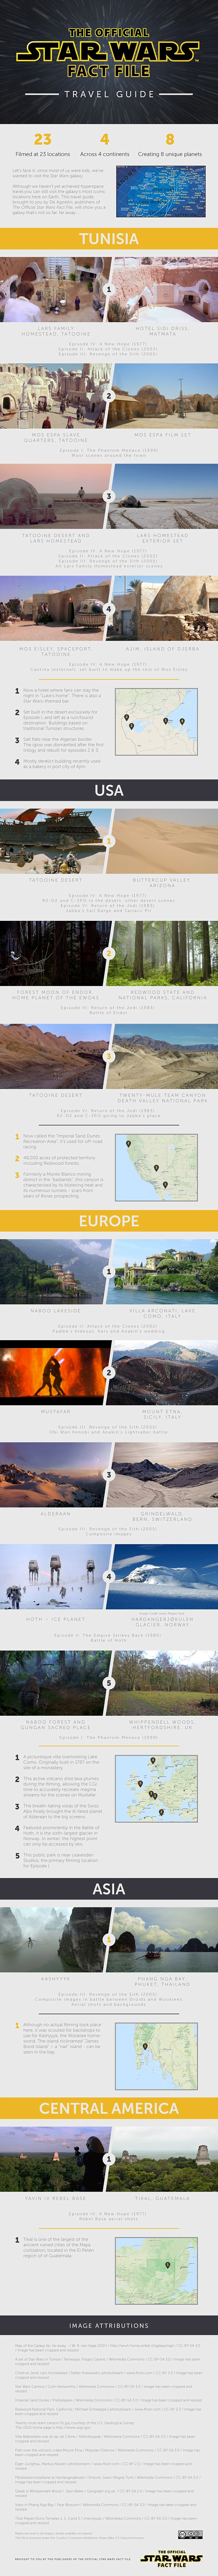 star wars day 2015 star wars travel guide infographic